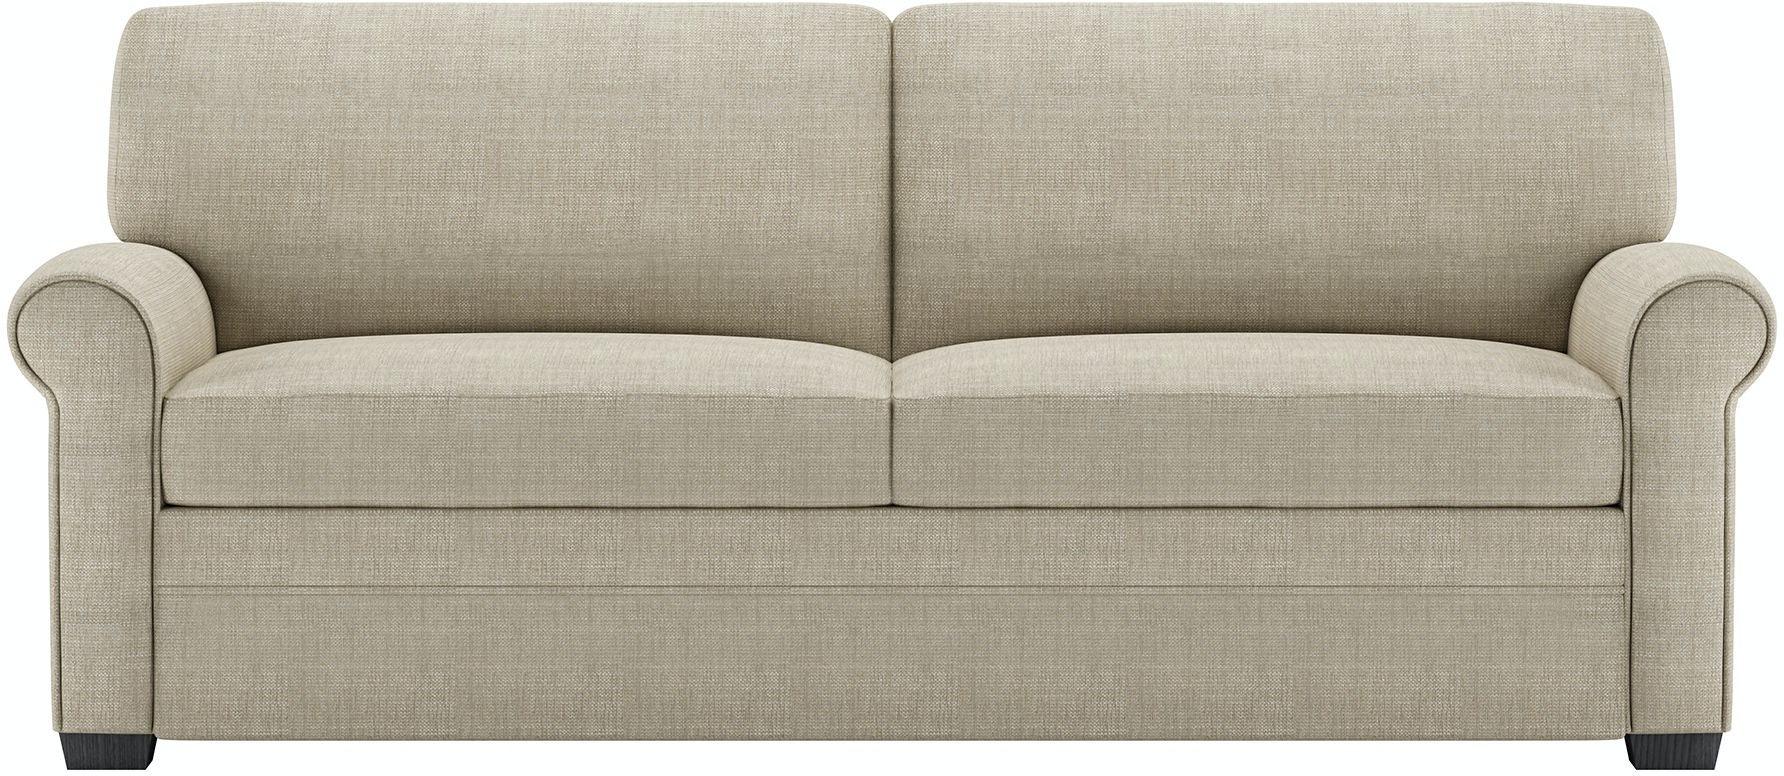 American Leather Living Room Sofa Sleeper Queen Size Gne So2 Qs